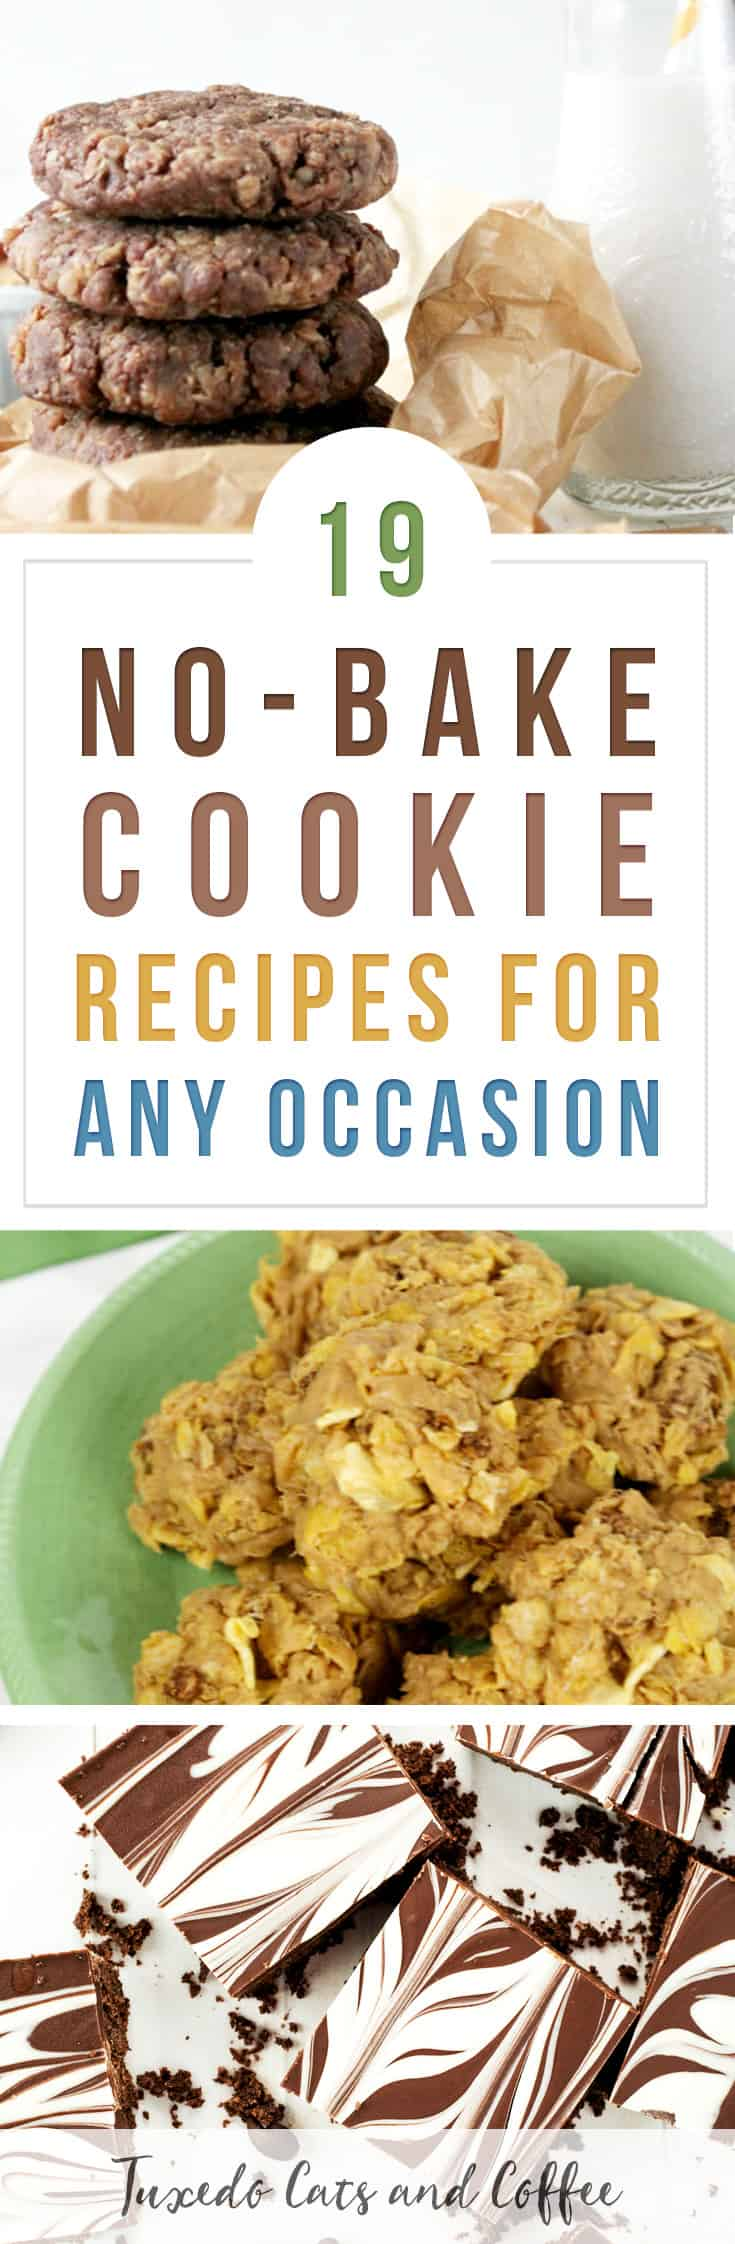 Need a quick and easy cookie recipe that doesn't require baking? Here are 19 no-bake cookie recipes for any occasion, including Christmas cookie exchanges, potlucks, and more! Many of these cookie recipes include peanut butter or oats since that makes a good base for a no-bake cookie. :)